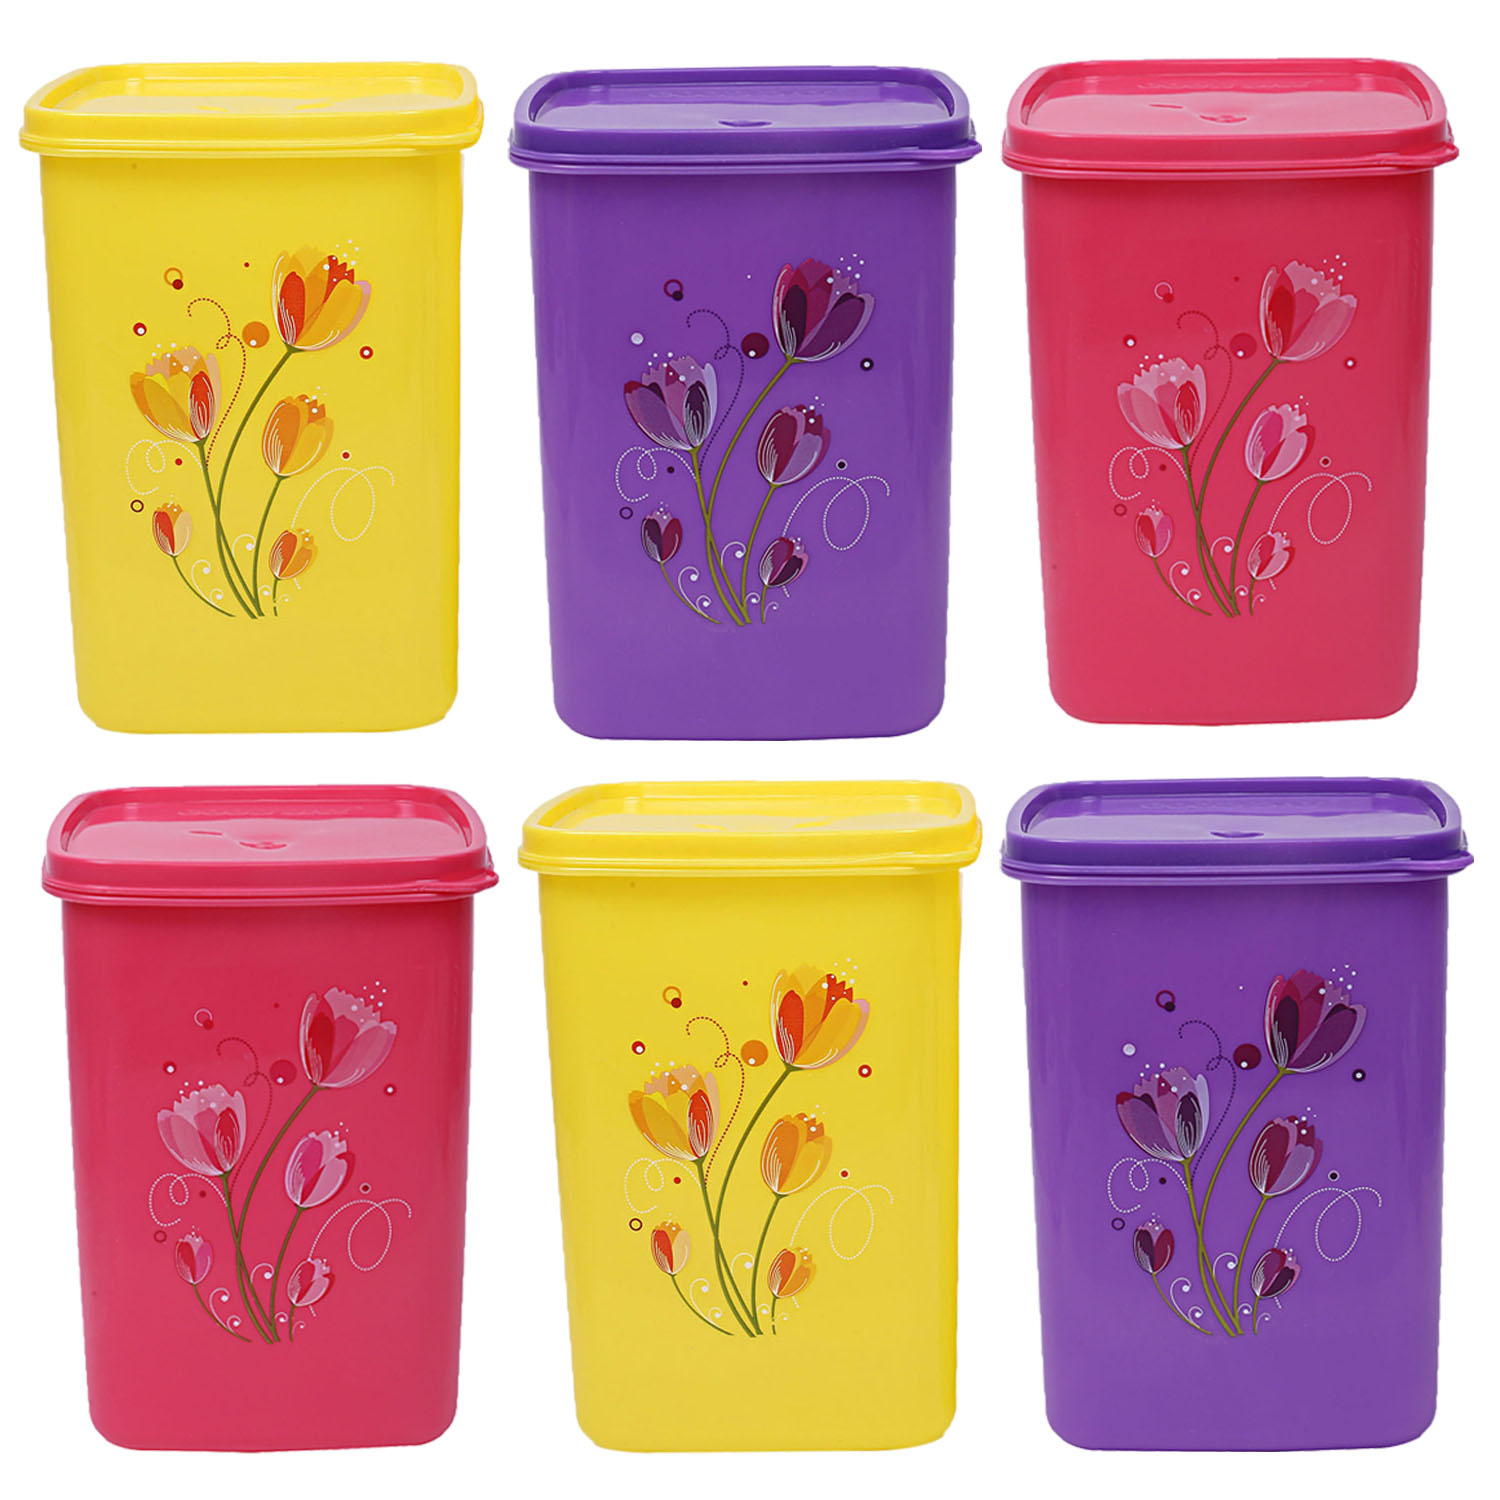 Kuber Industries Plastic 6 Pieces Multipurpose Storage Container Set 2000ml (Pink, Purple & Yellow) - CTKTC23358